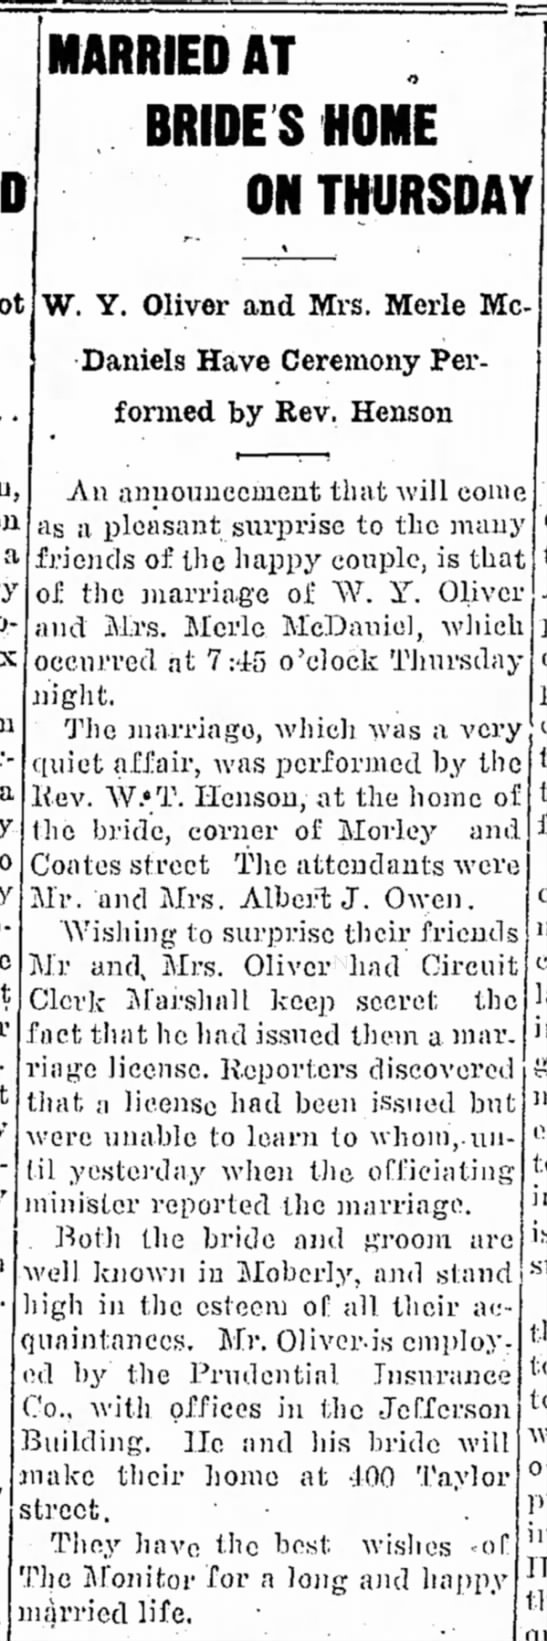 Merle McDaniel and WY Oliver marriage - Moberly Weekly Monitor, 8 Jun 1915, p1 - MARRIED AT BRIDES HOME ON THURSDAY a W. Y....